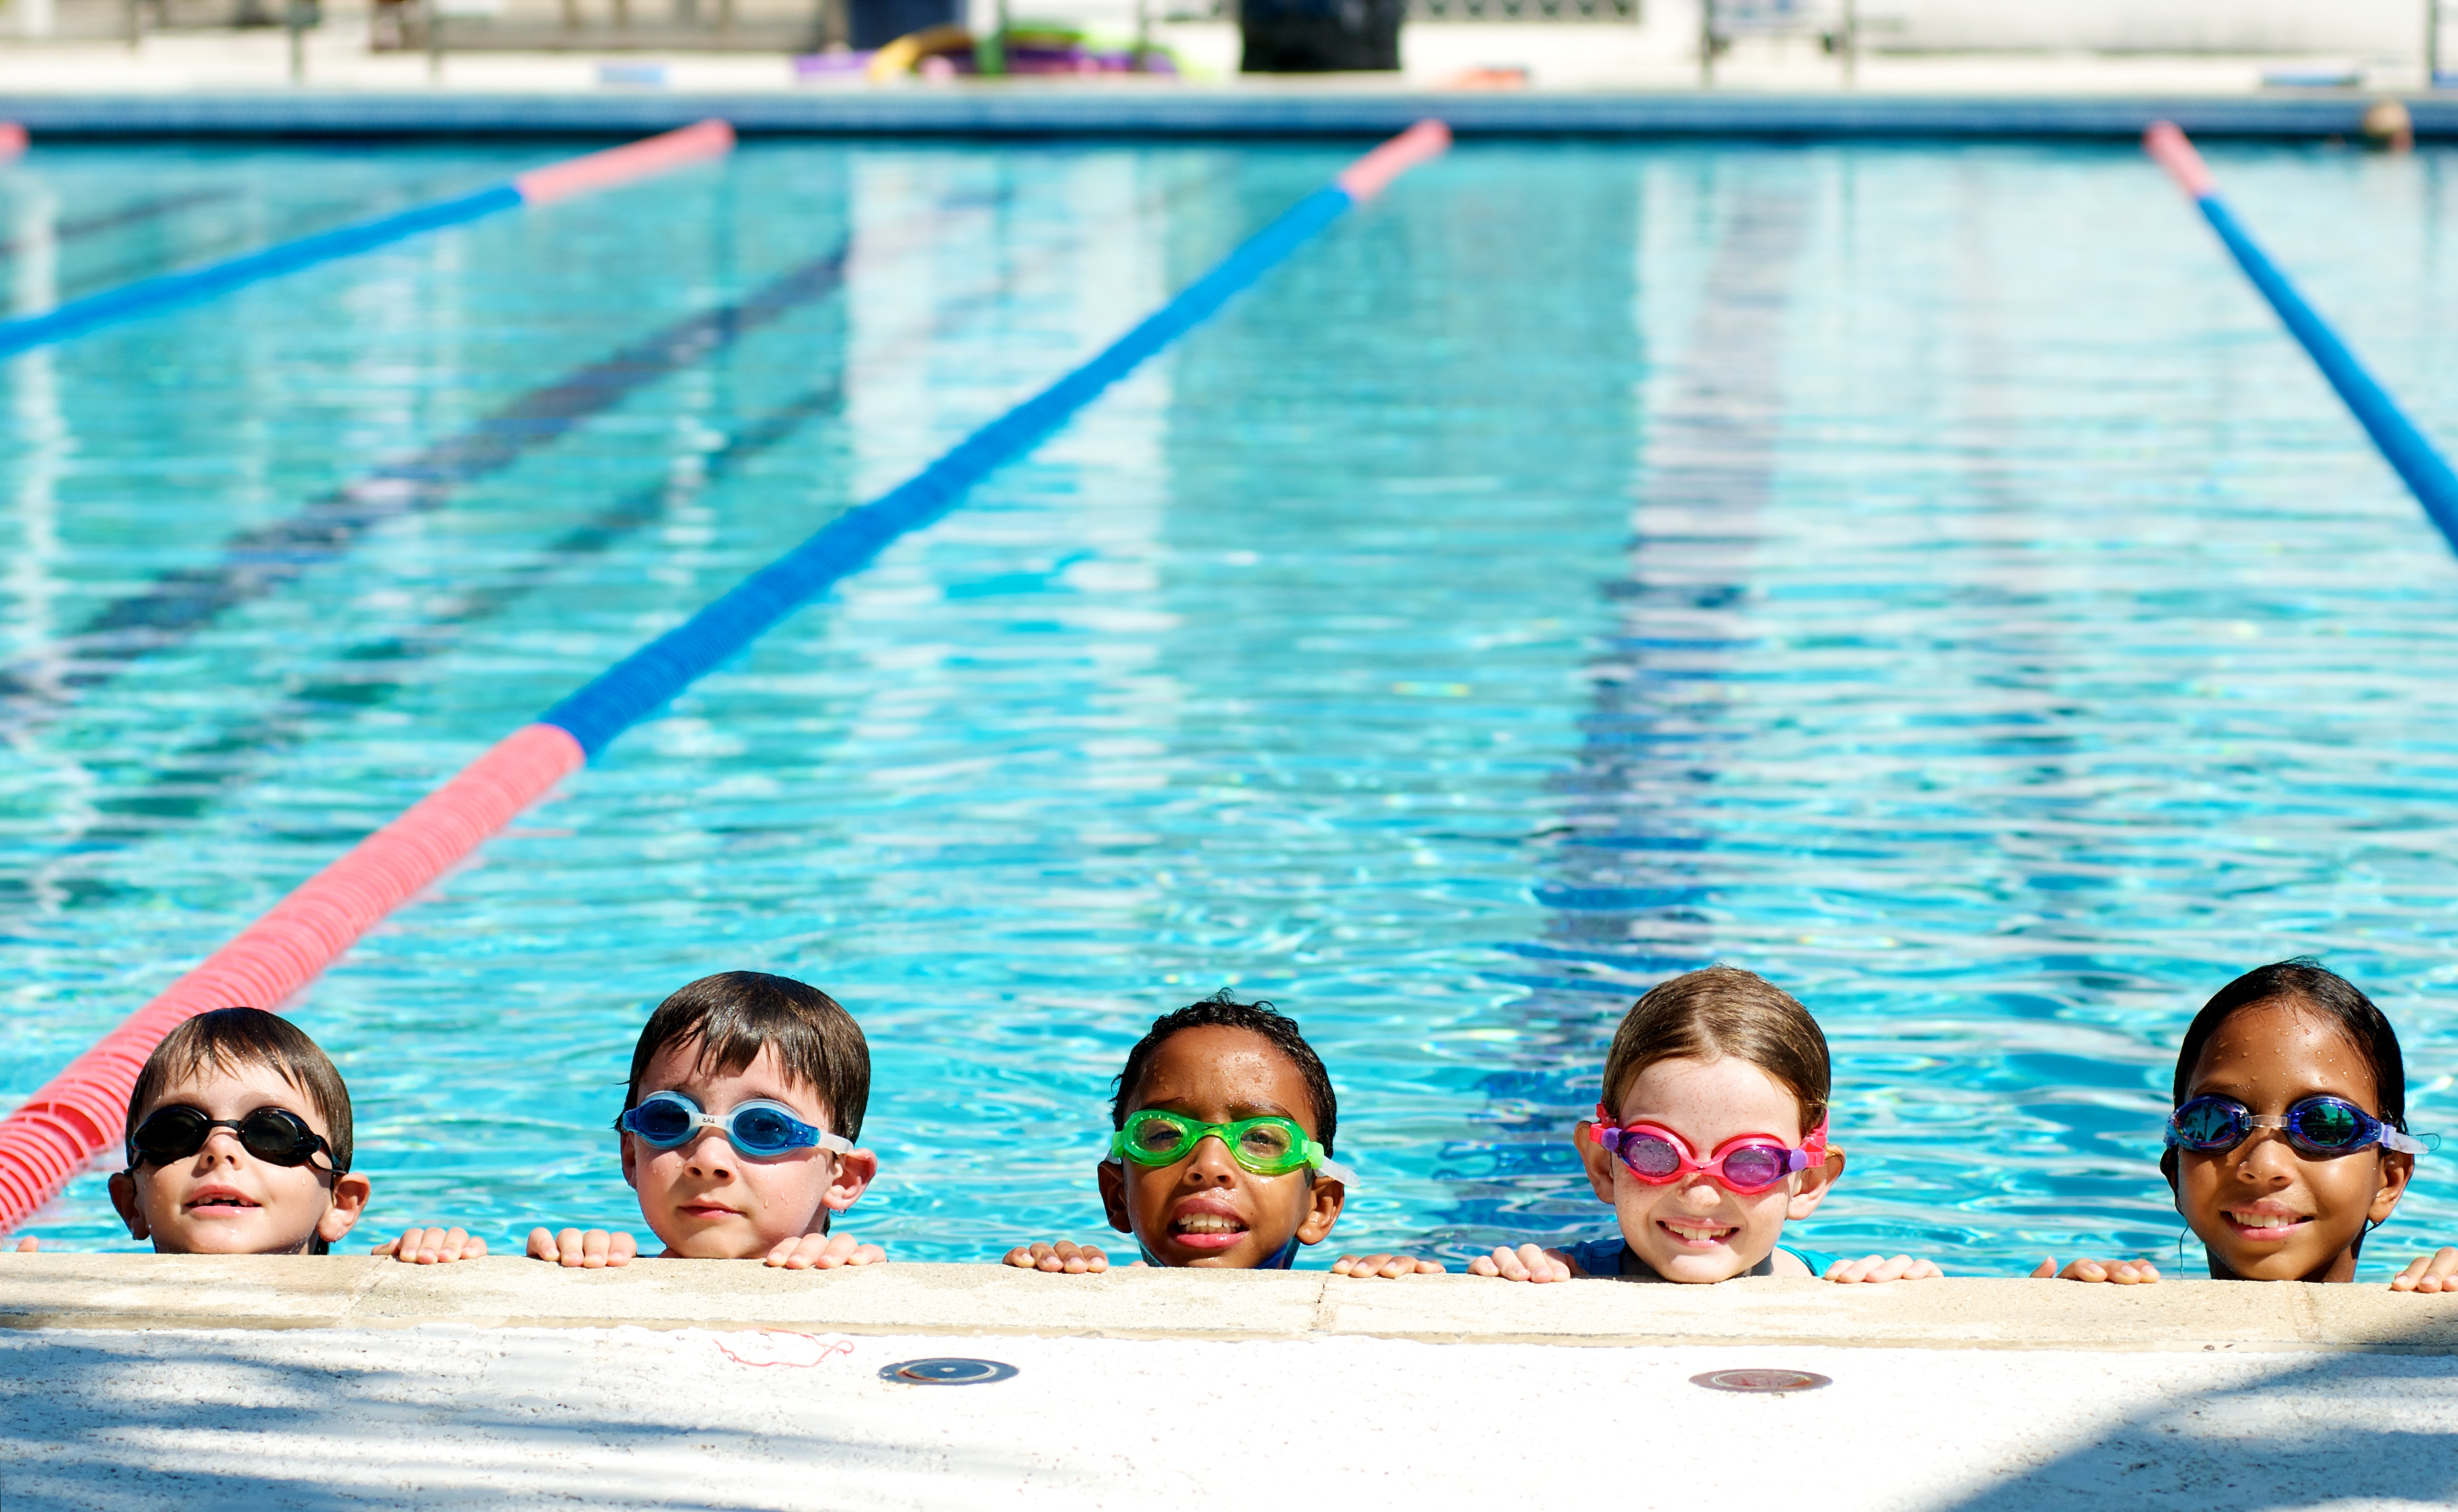 Cape town swim4life swim school exposed for racism for Kids swimming pool